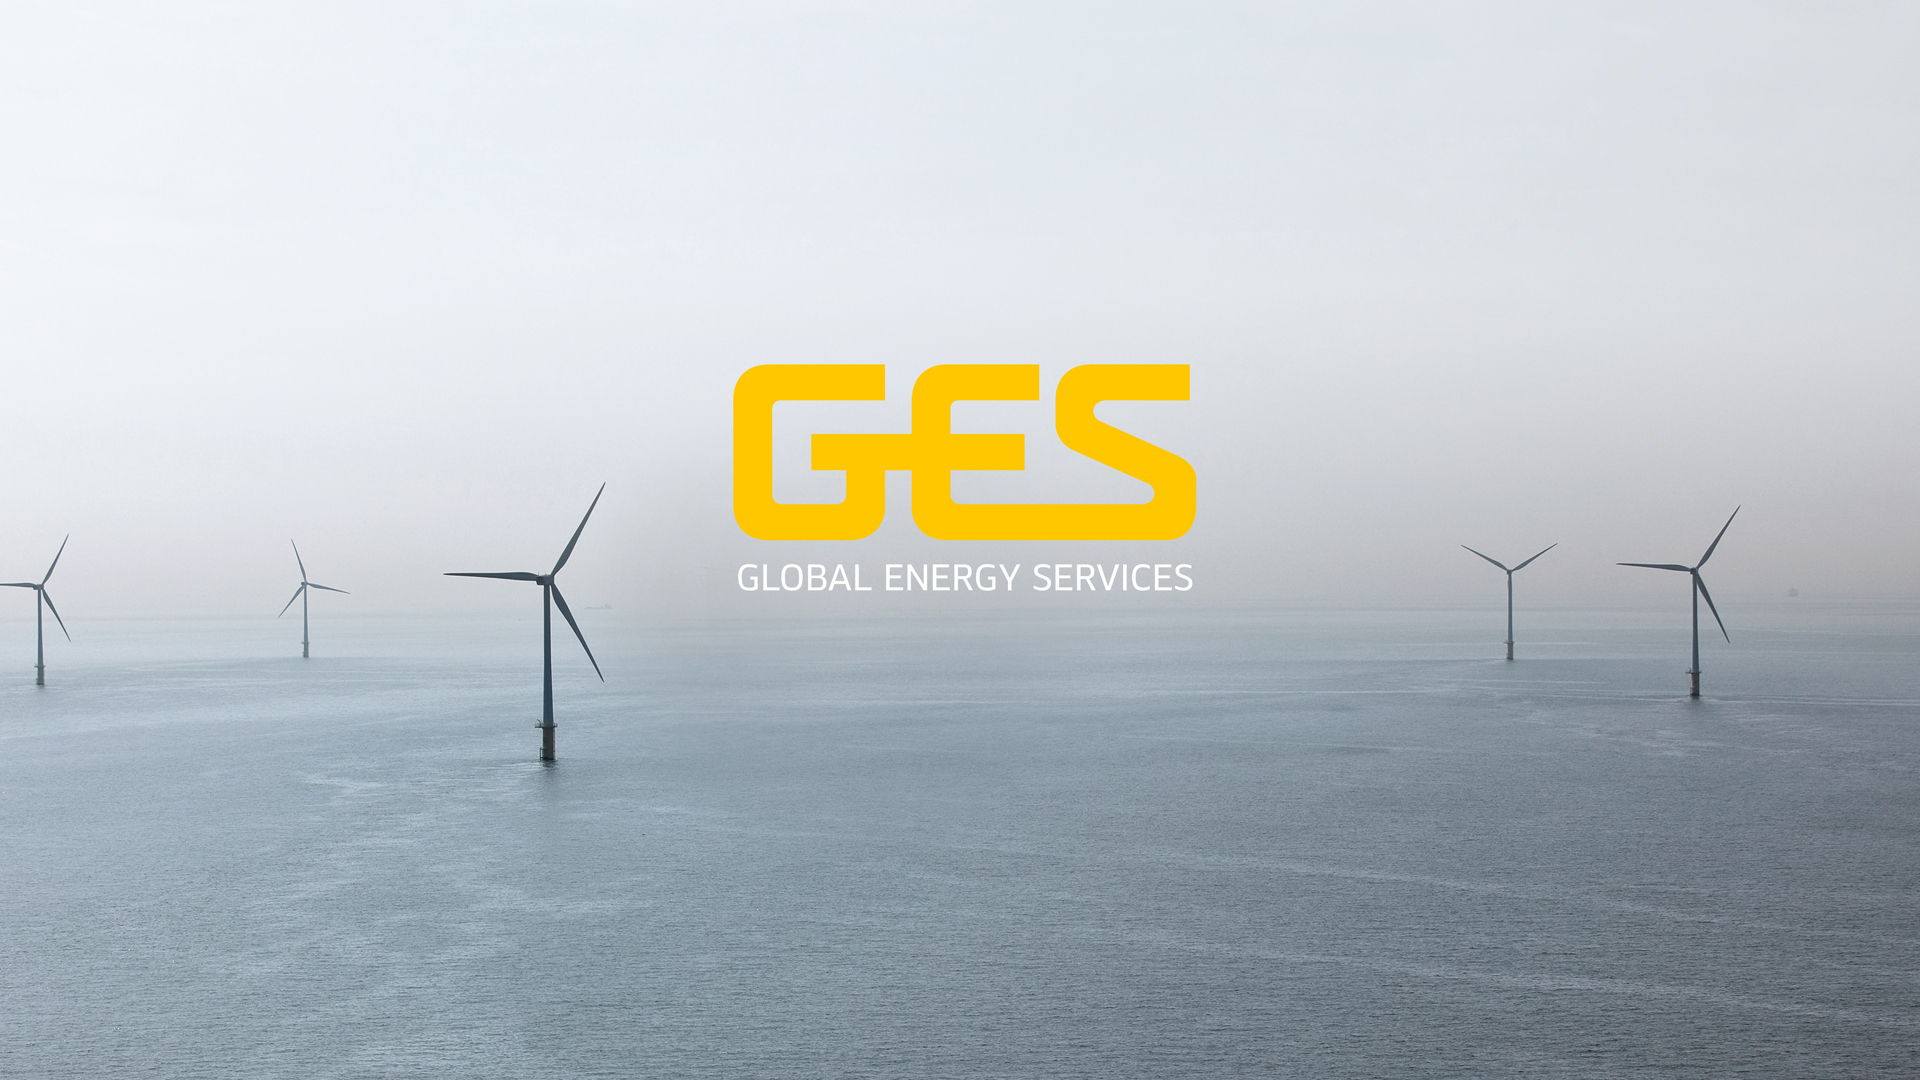 GES – Global Energy Services